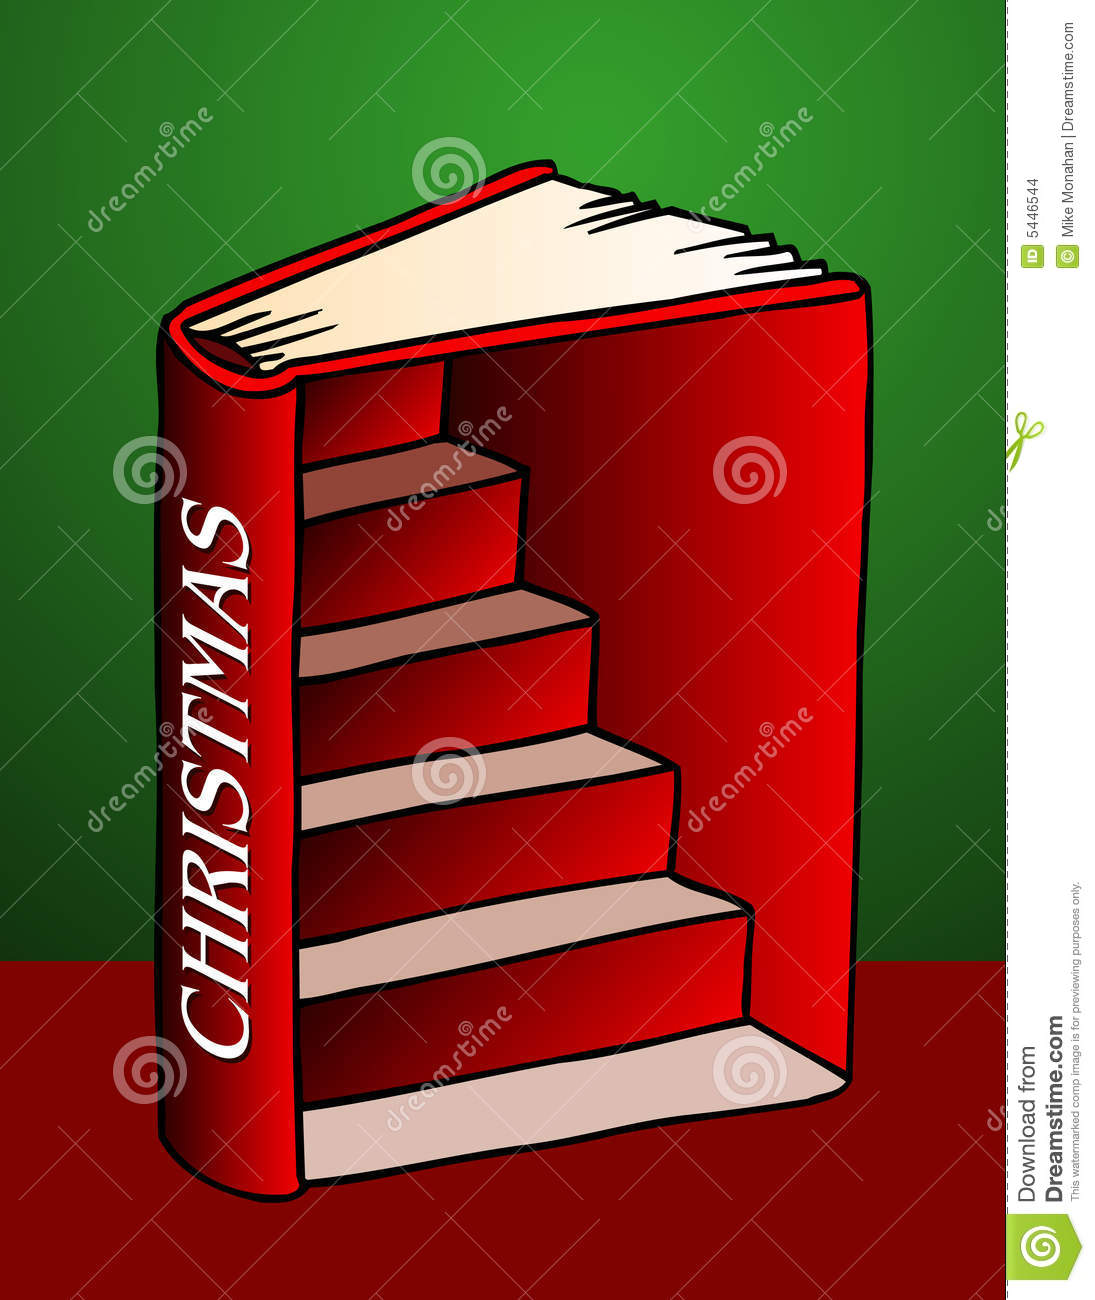 Book Cover Illustration Rates : Christmas book illustration stock vector of